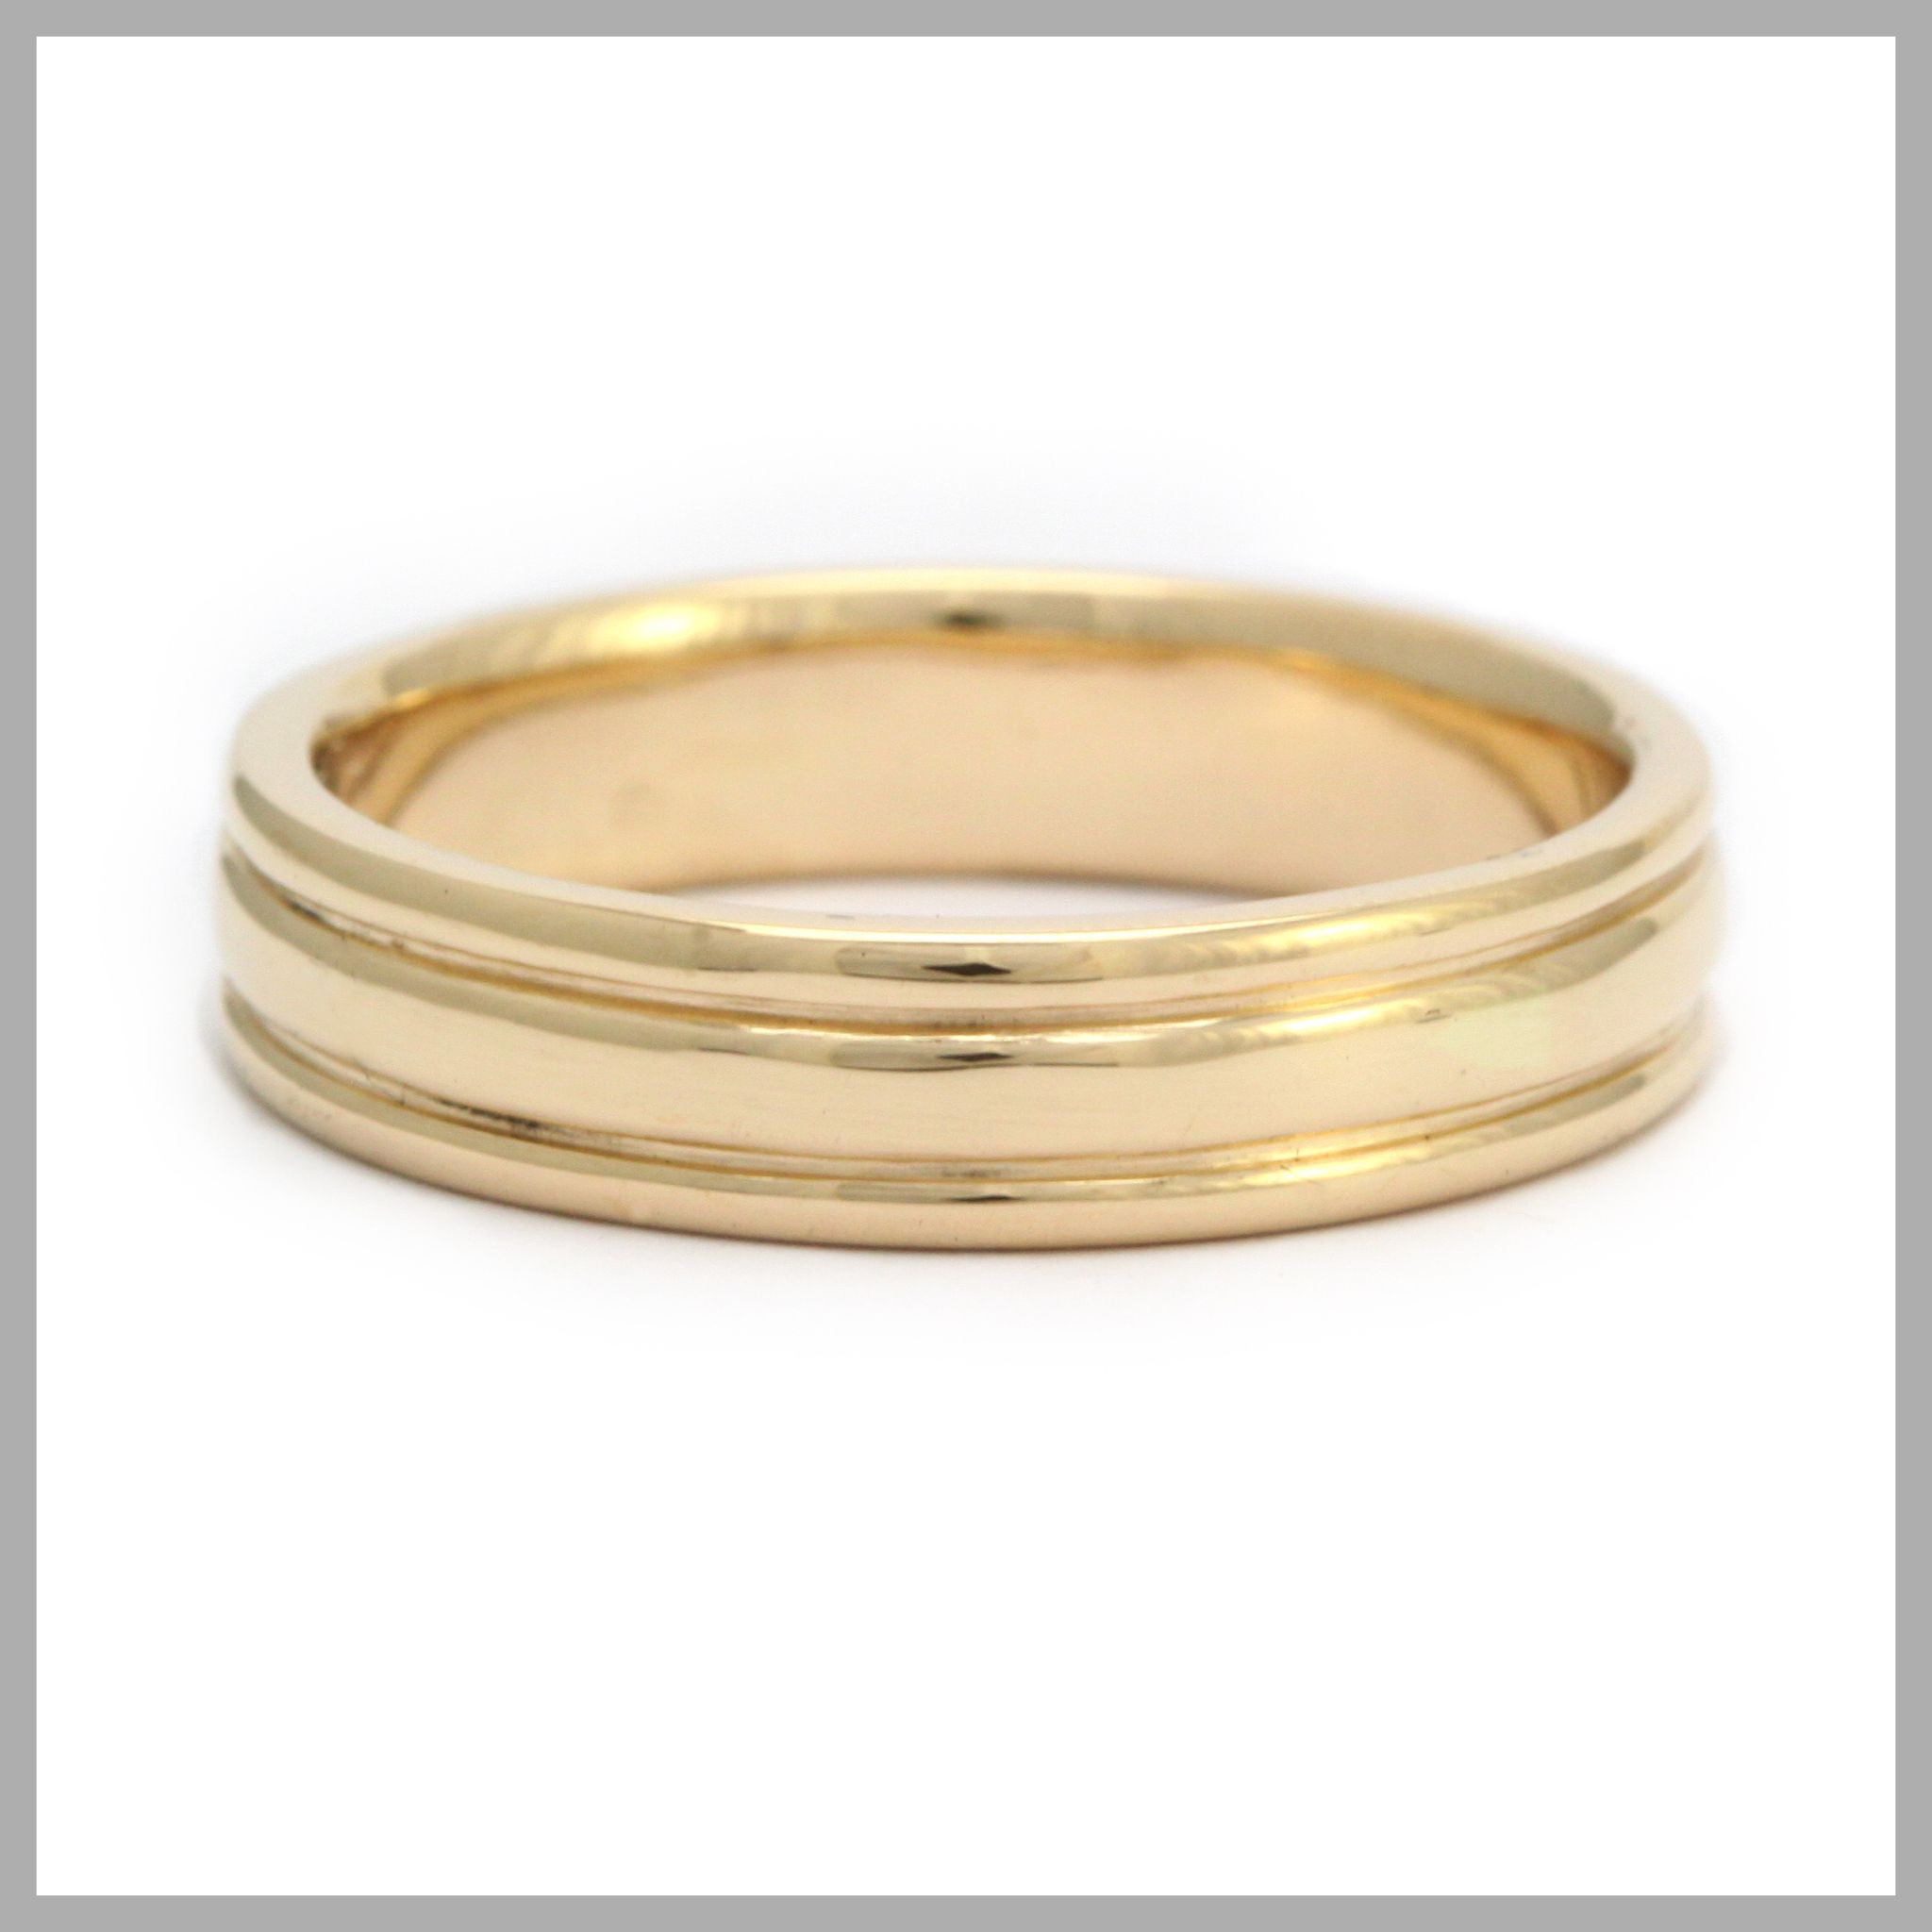 Grooved Ring Handmade Bespoke Gold Platinum Palladium Contemporary